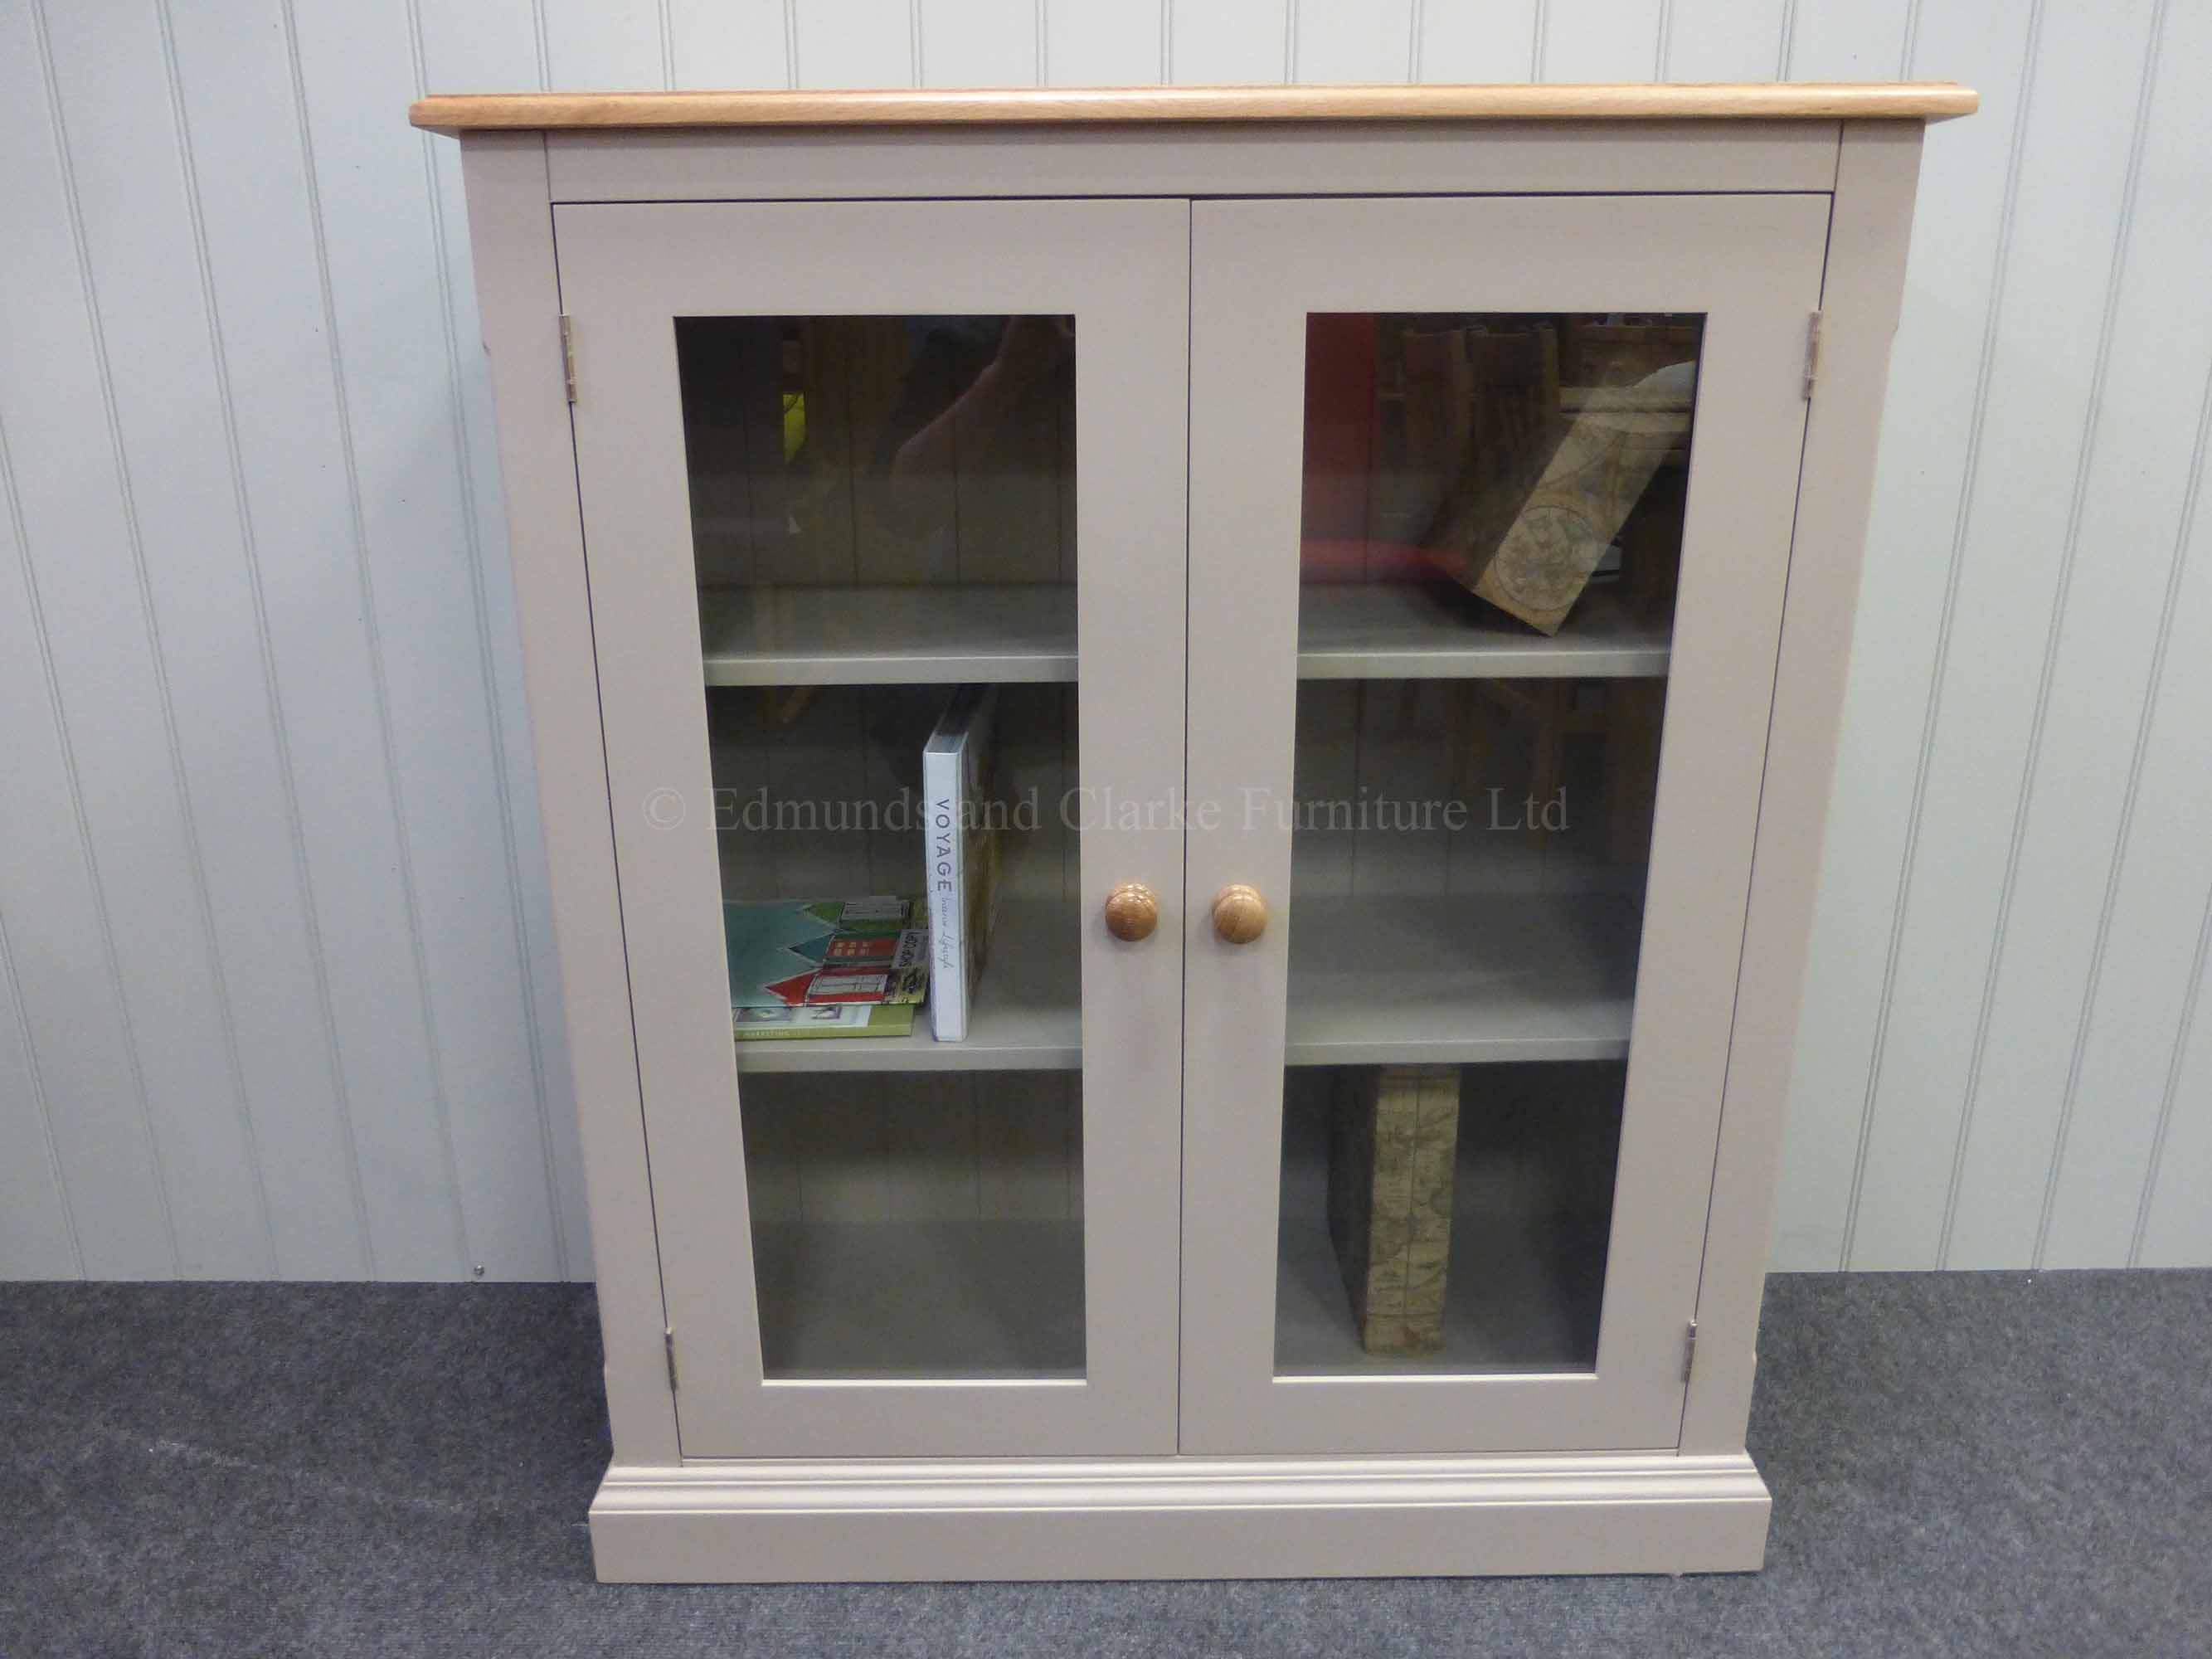 Edmunds Painted Fully Glazed Bookcases. Image showing painted all over with oak top and oak handles, many colour and handle options available. mouled plinth and cornice